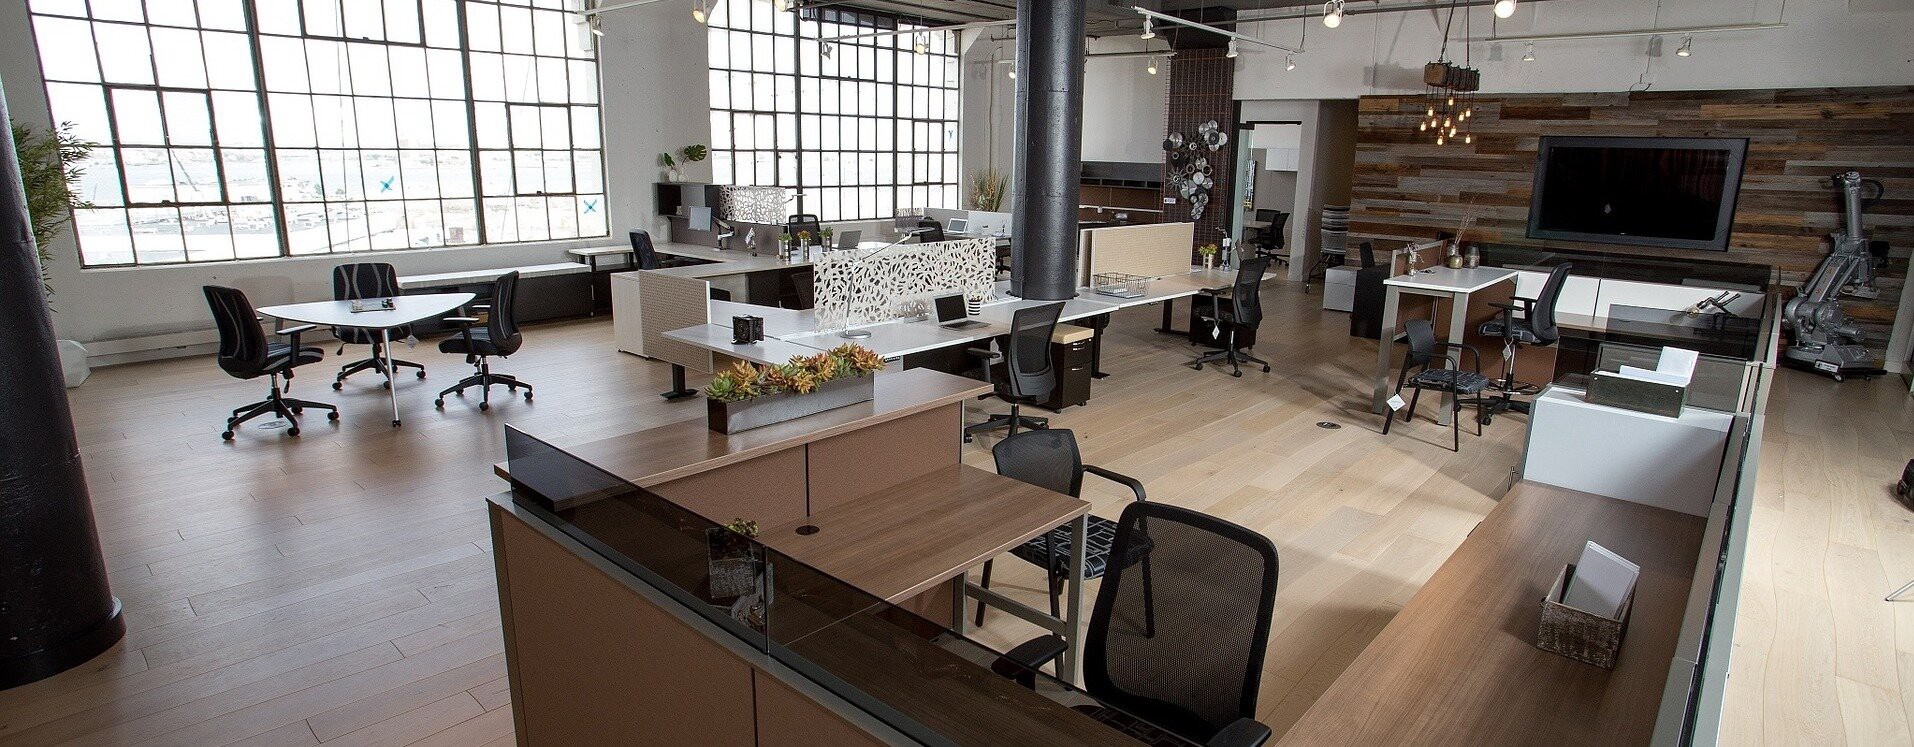 Bright, clean office with plenty of space around the workstations